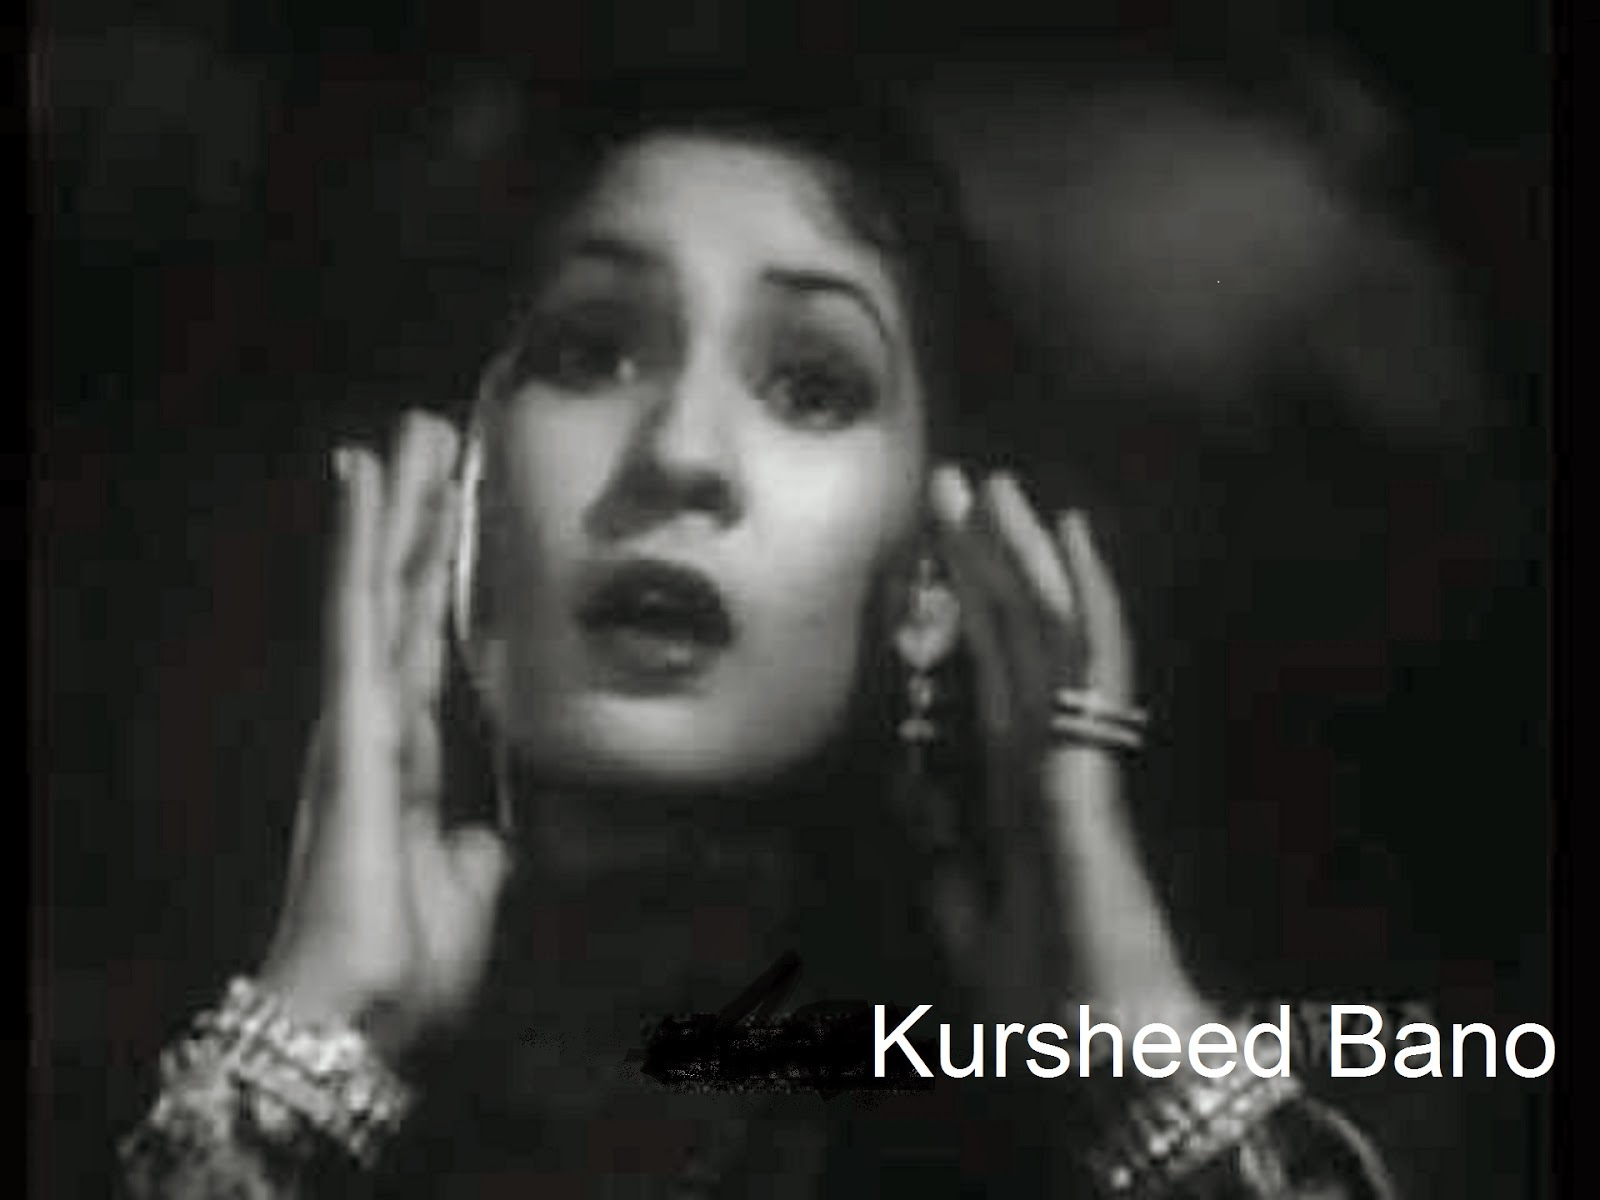 Khursheed bano barso re tansen a forgotten song for Bano re bano song